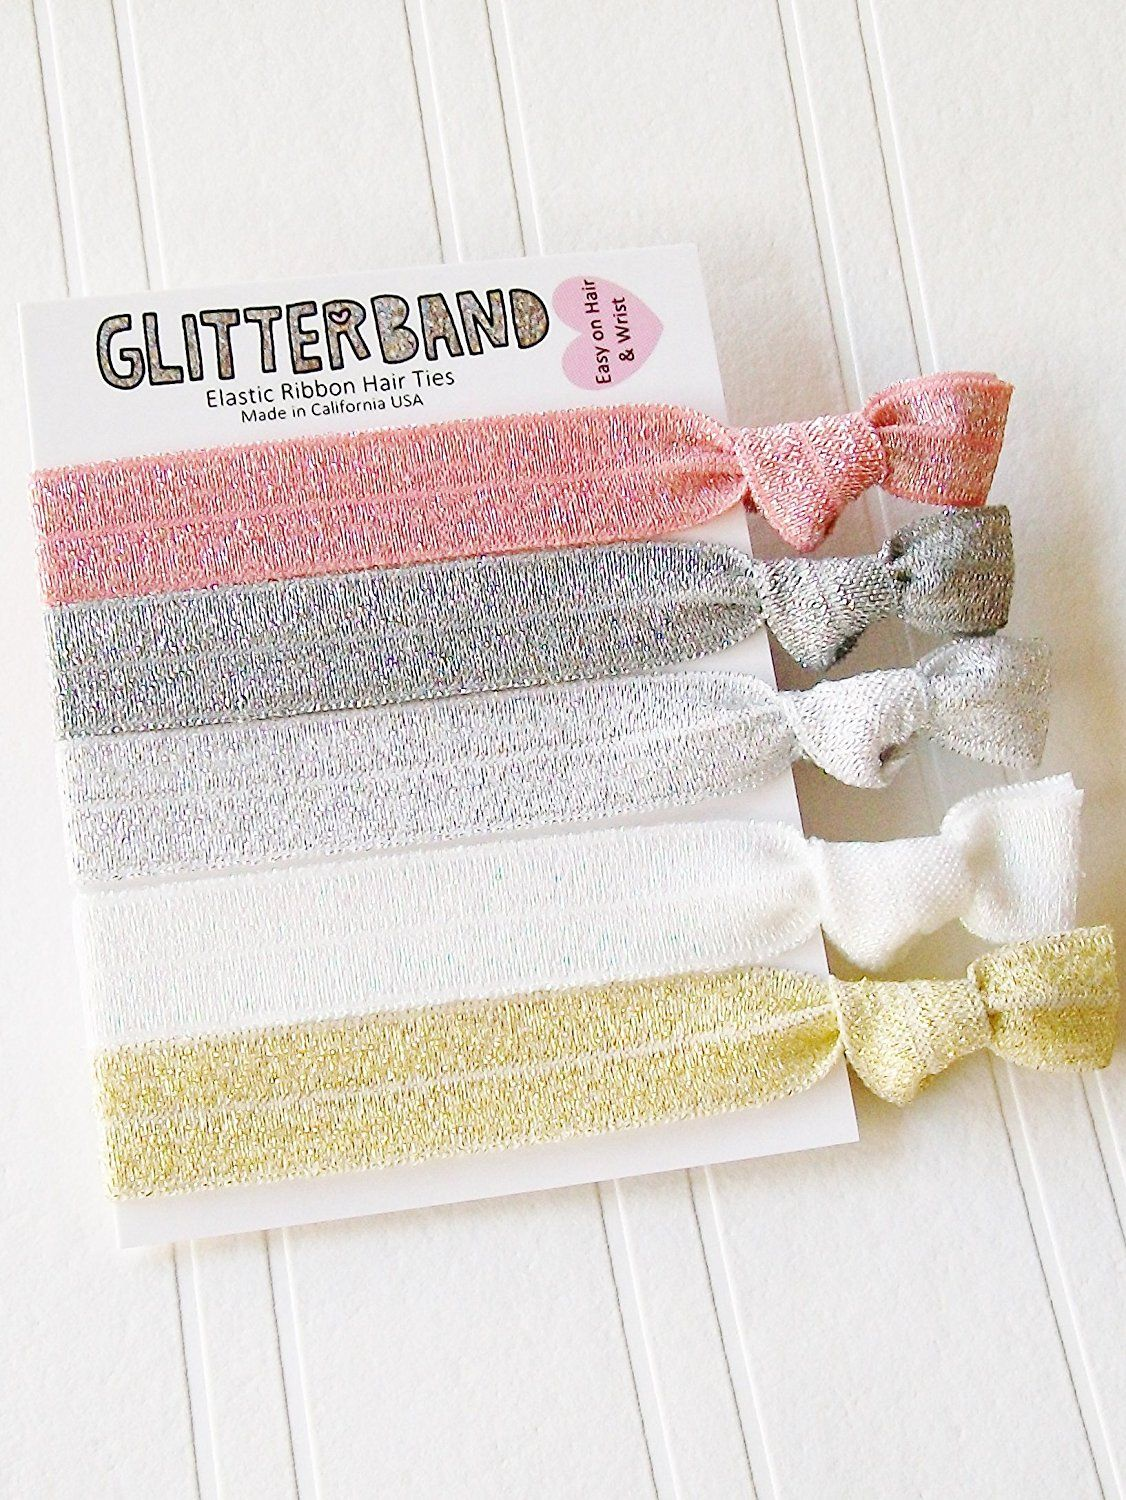 Hair ties sparkle 5 pack by lucky girl hair ties brand